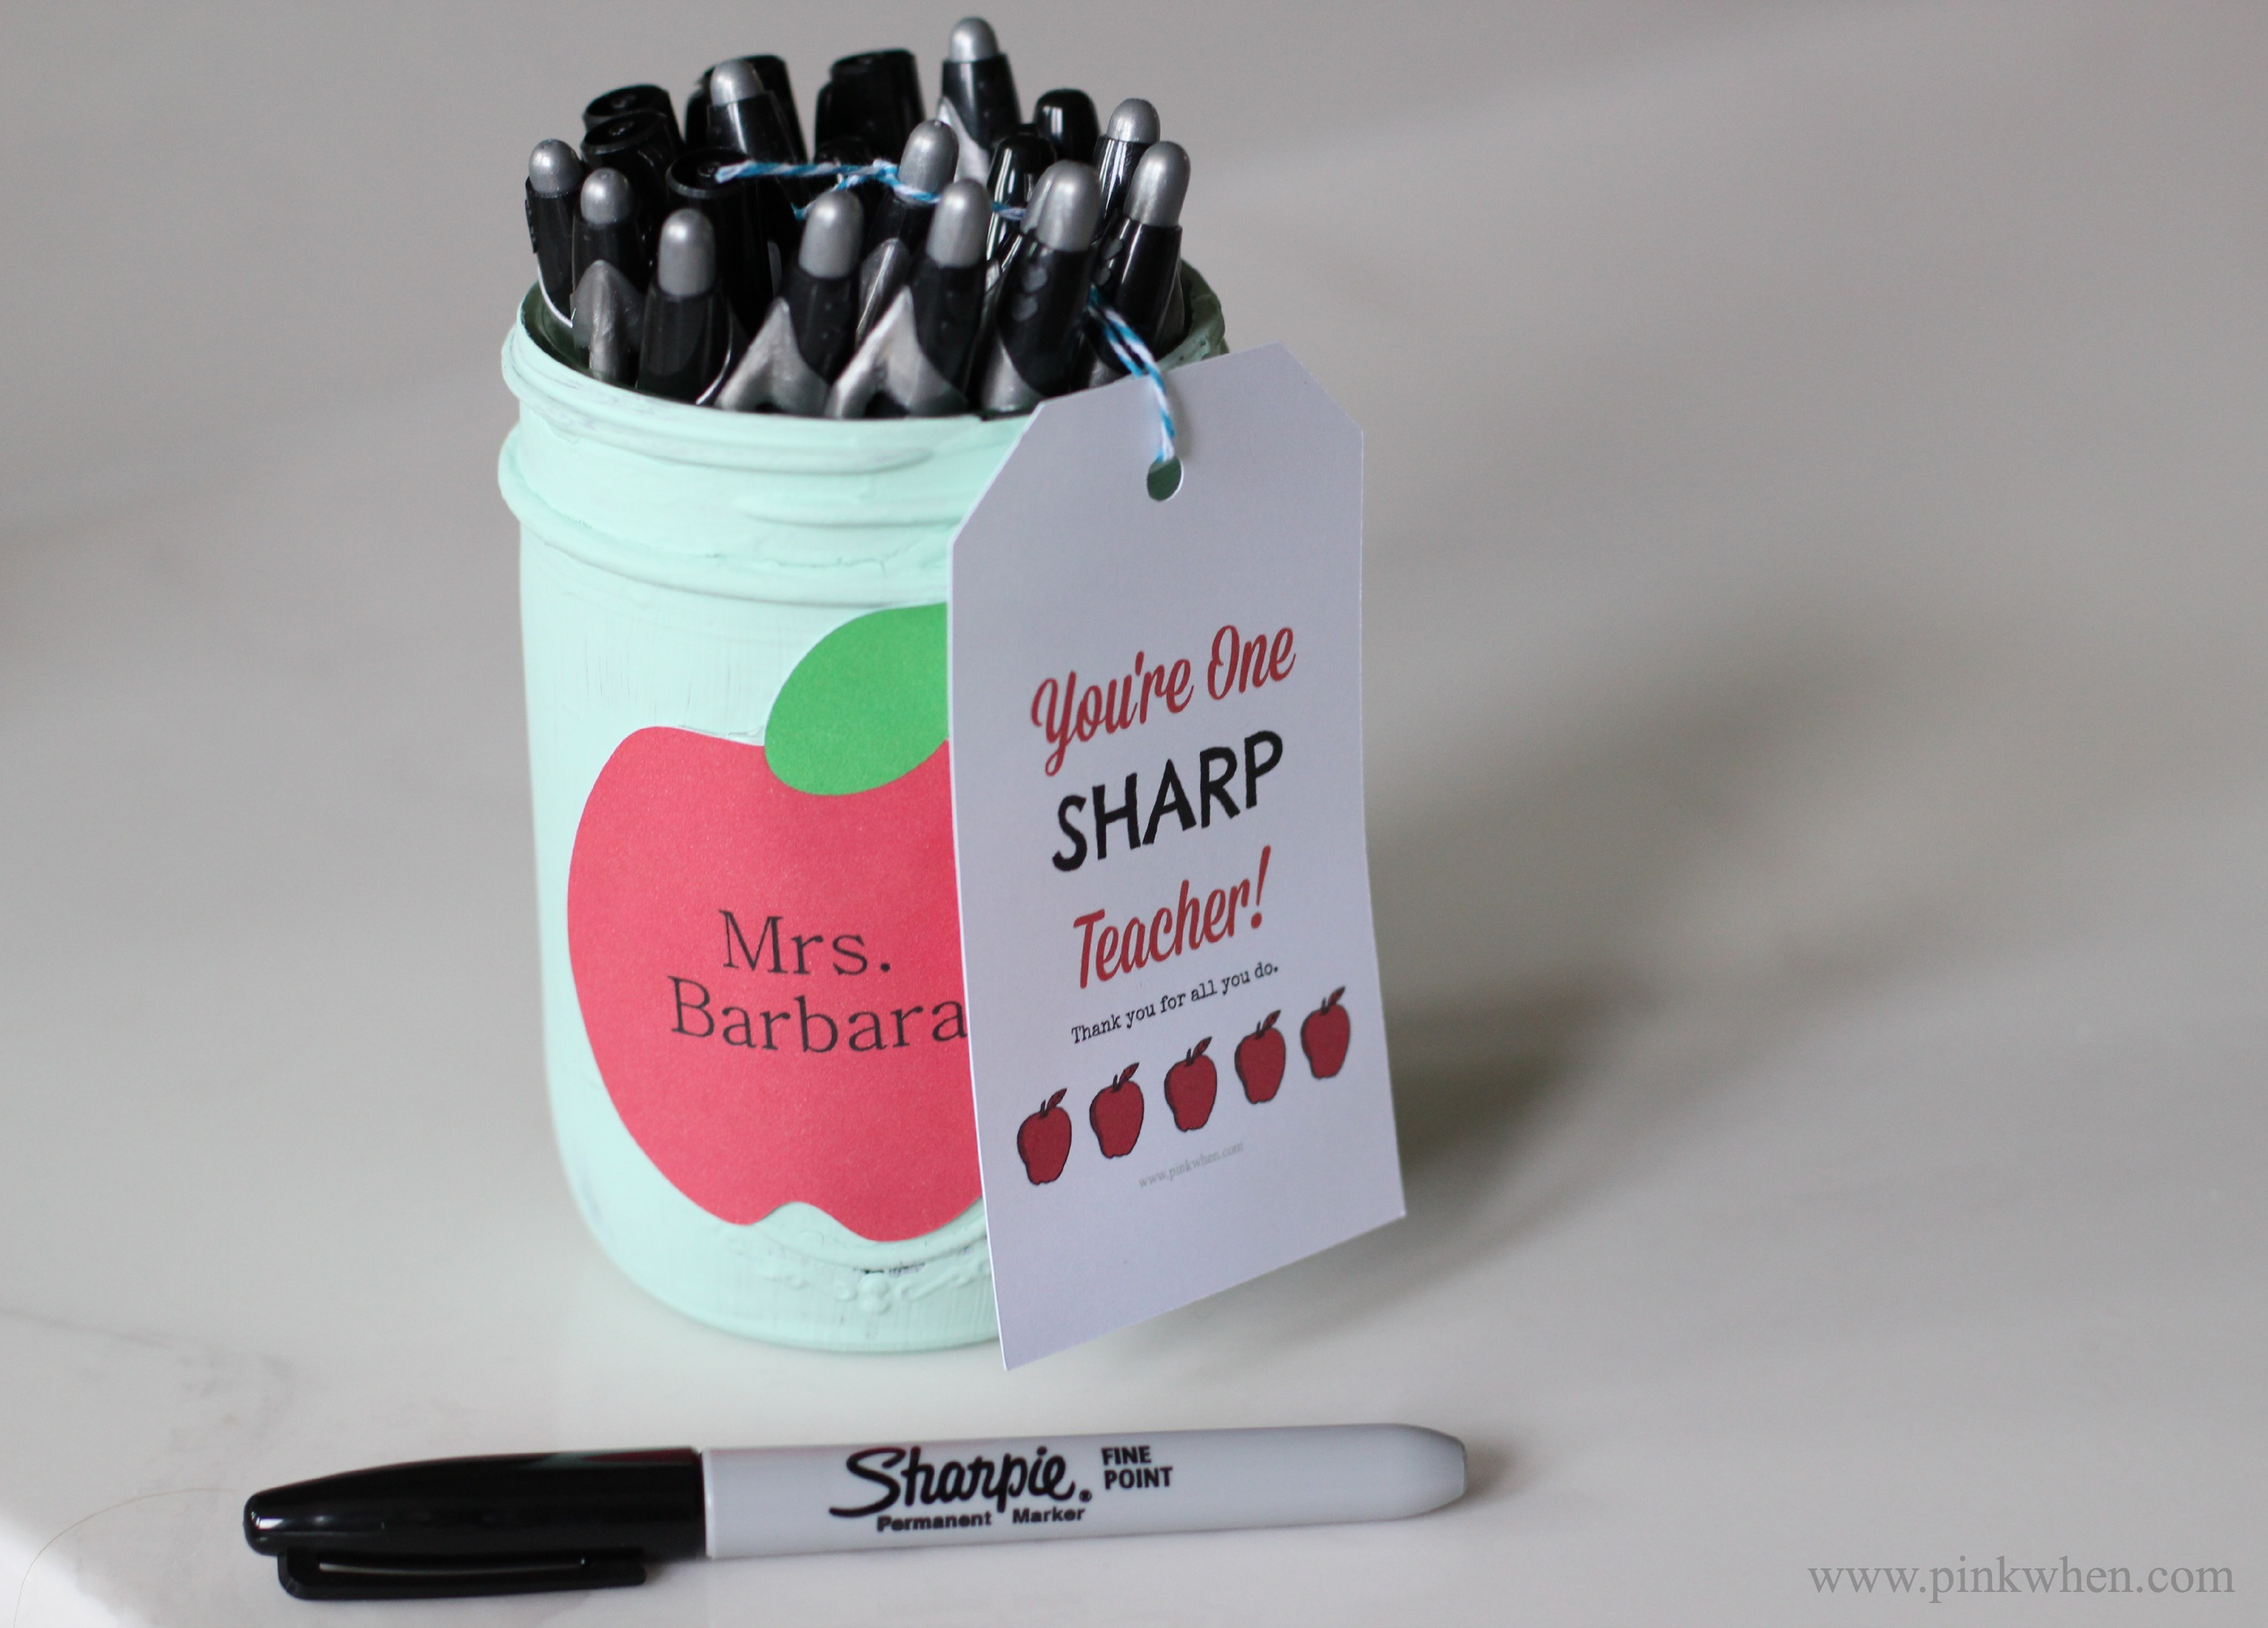 featuring sharpie markers and printable gift tag from pink when